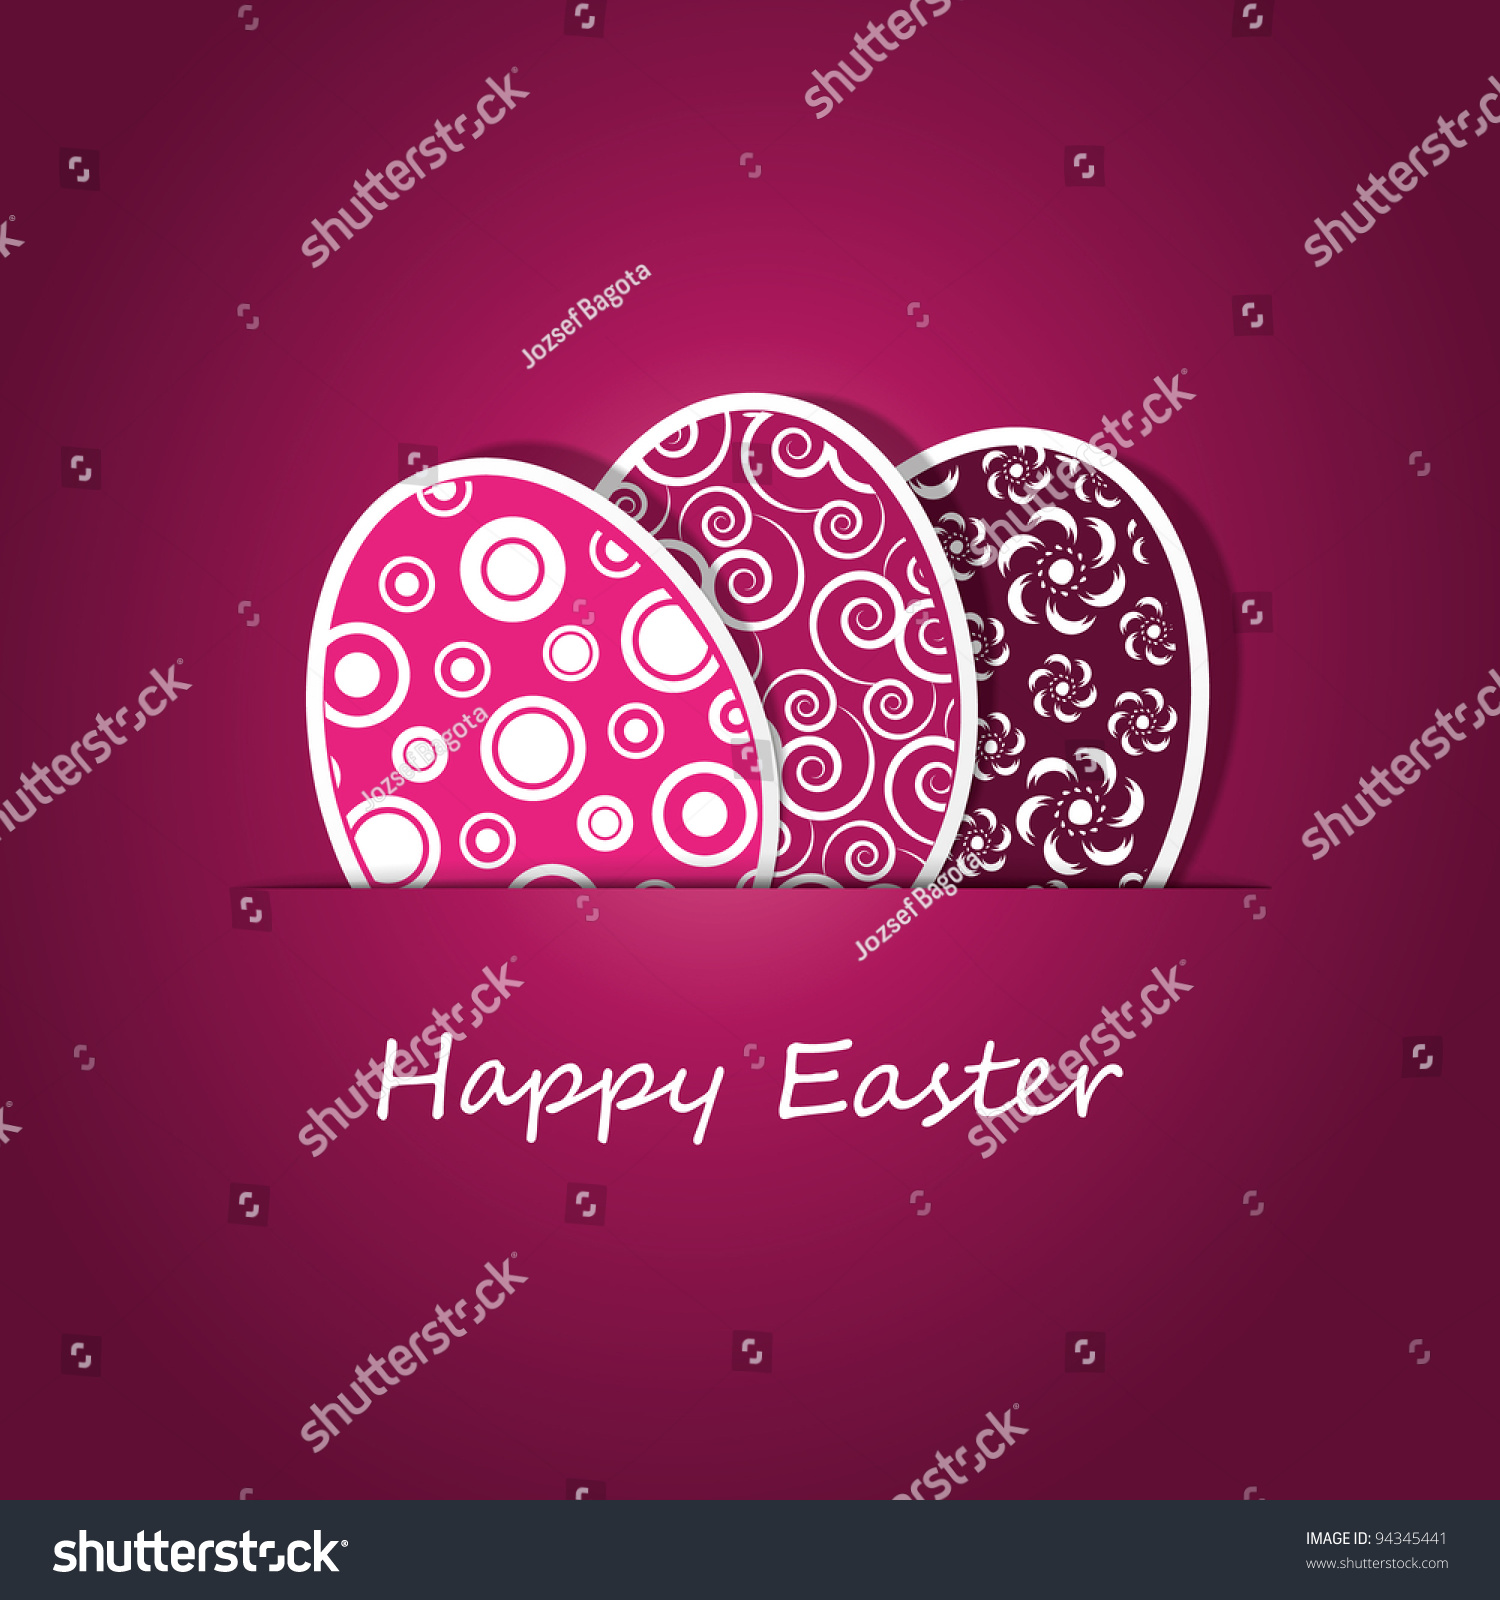 Happy Easter Card Vector 94345441 Shutterstock – Happy Easter Card